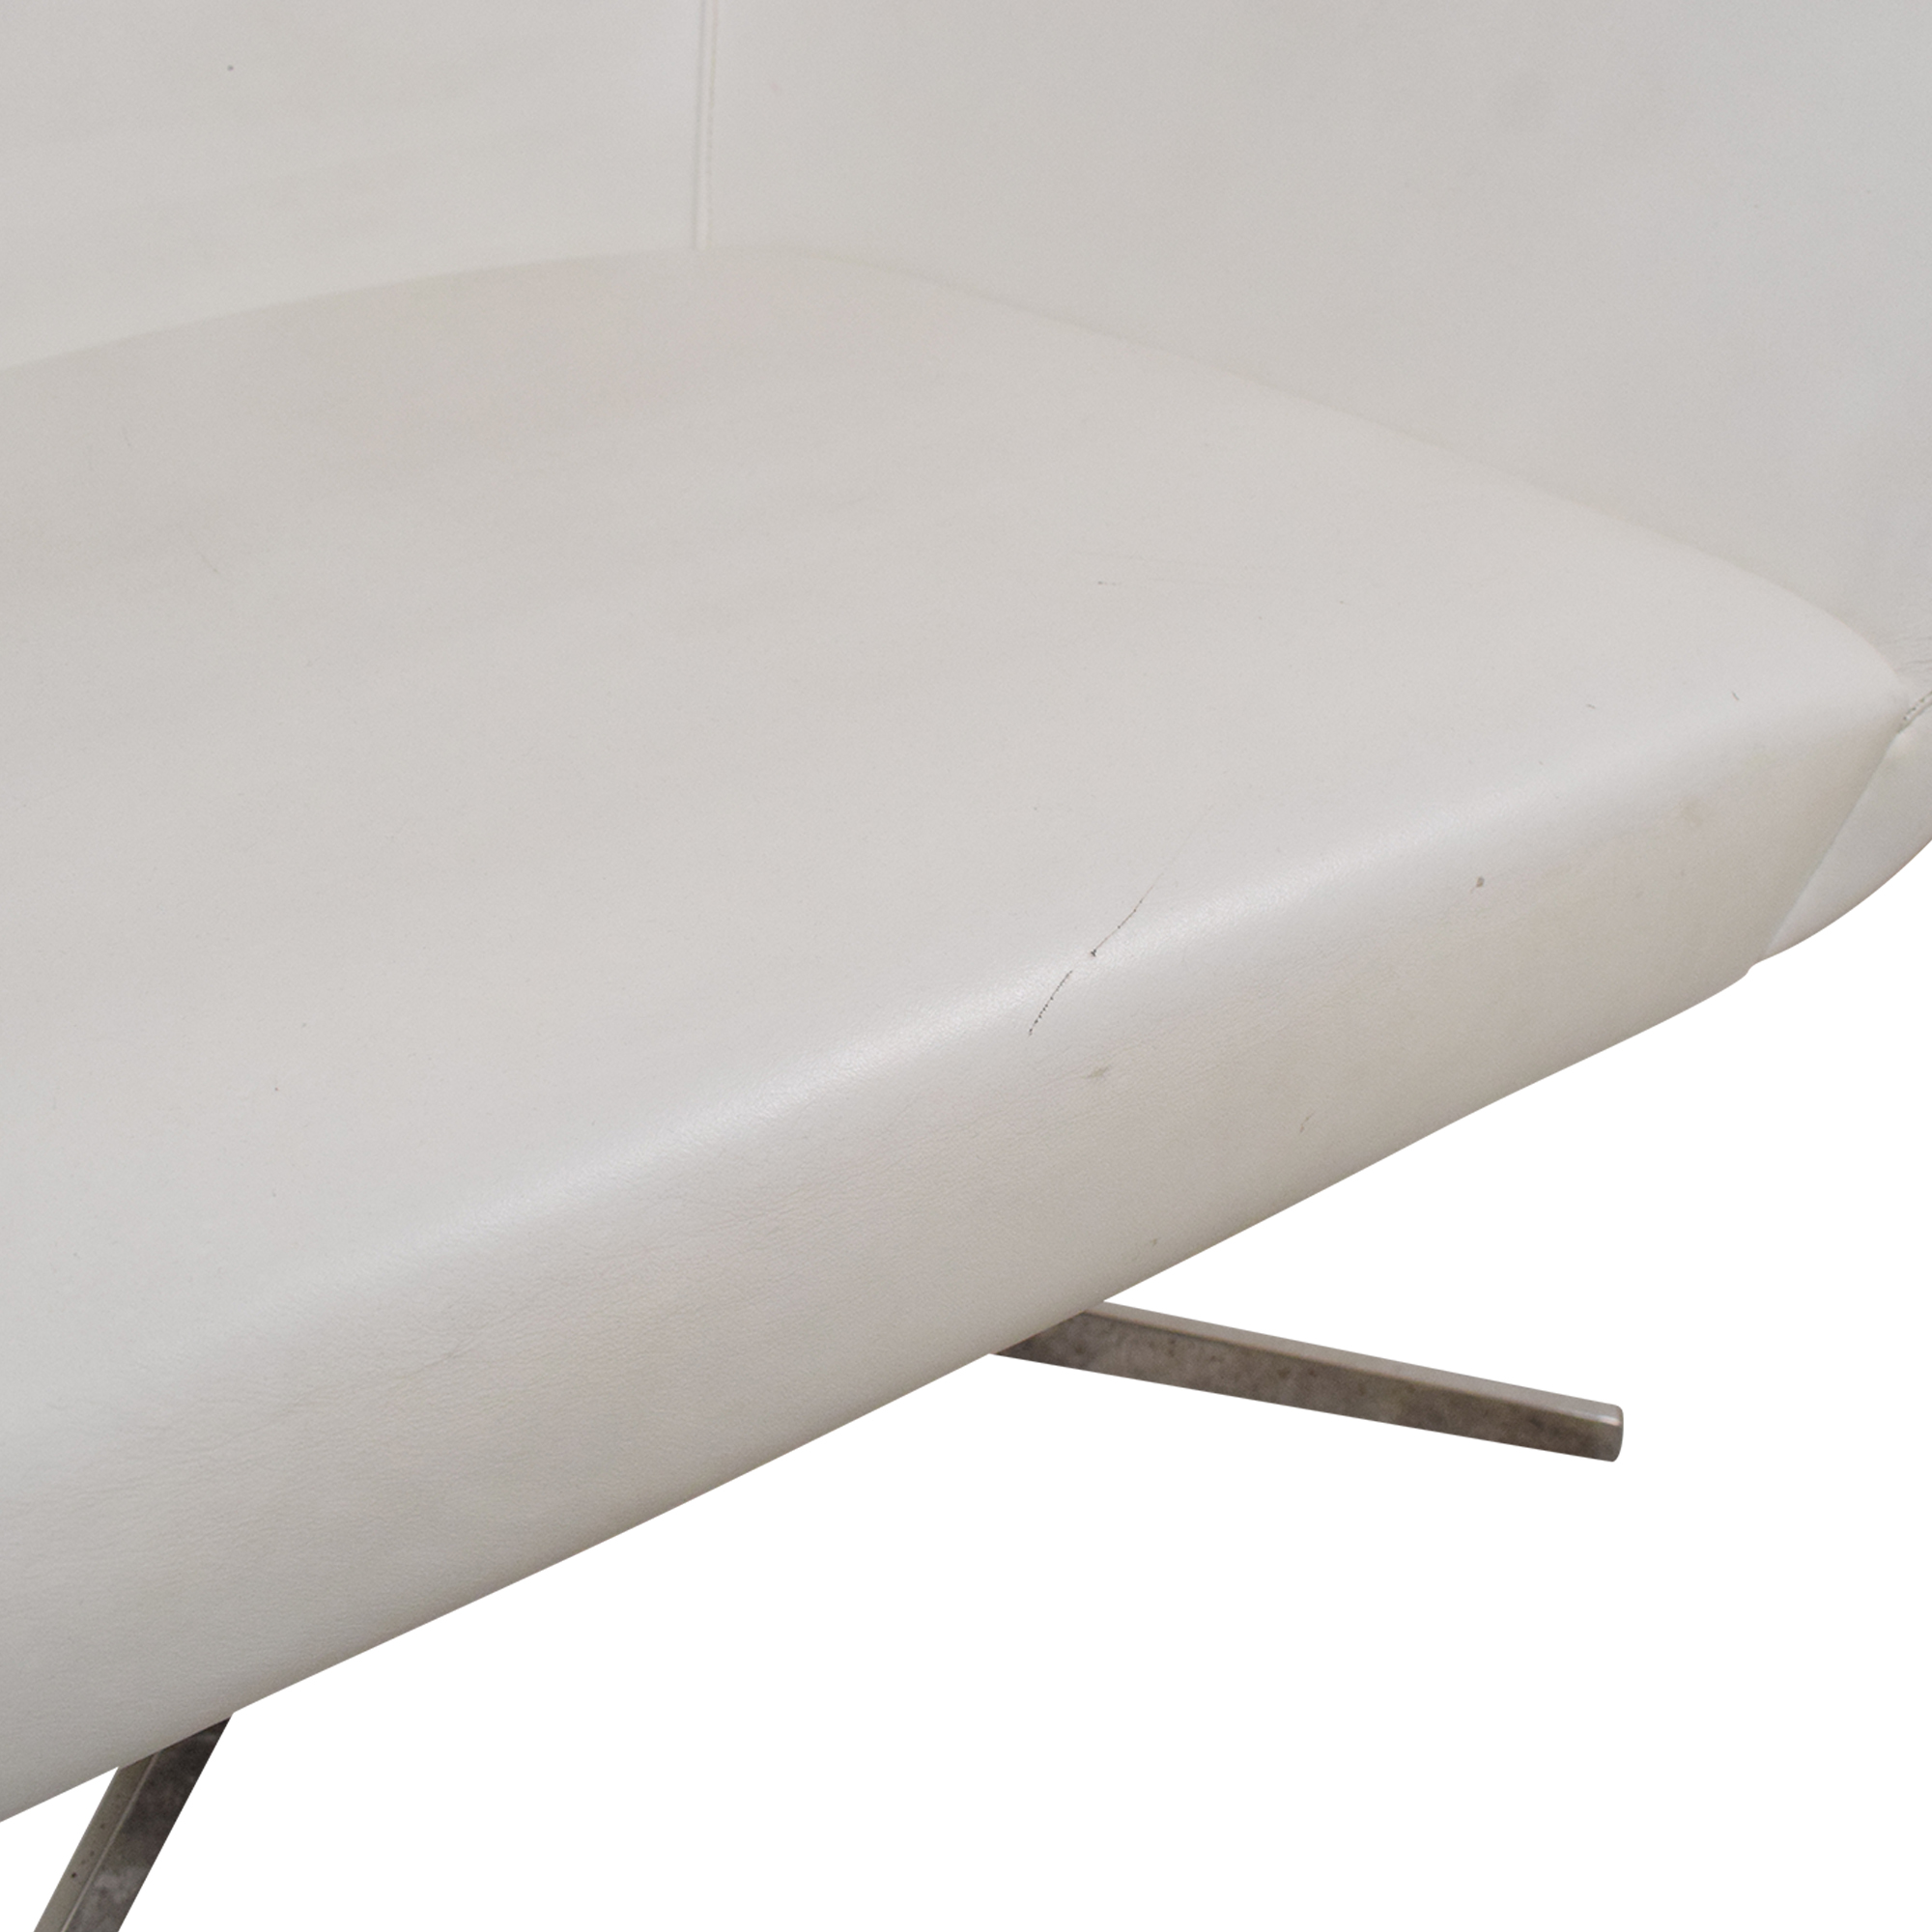 Bernhardt Bernhardt Remy Lounge Chair price